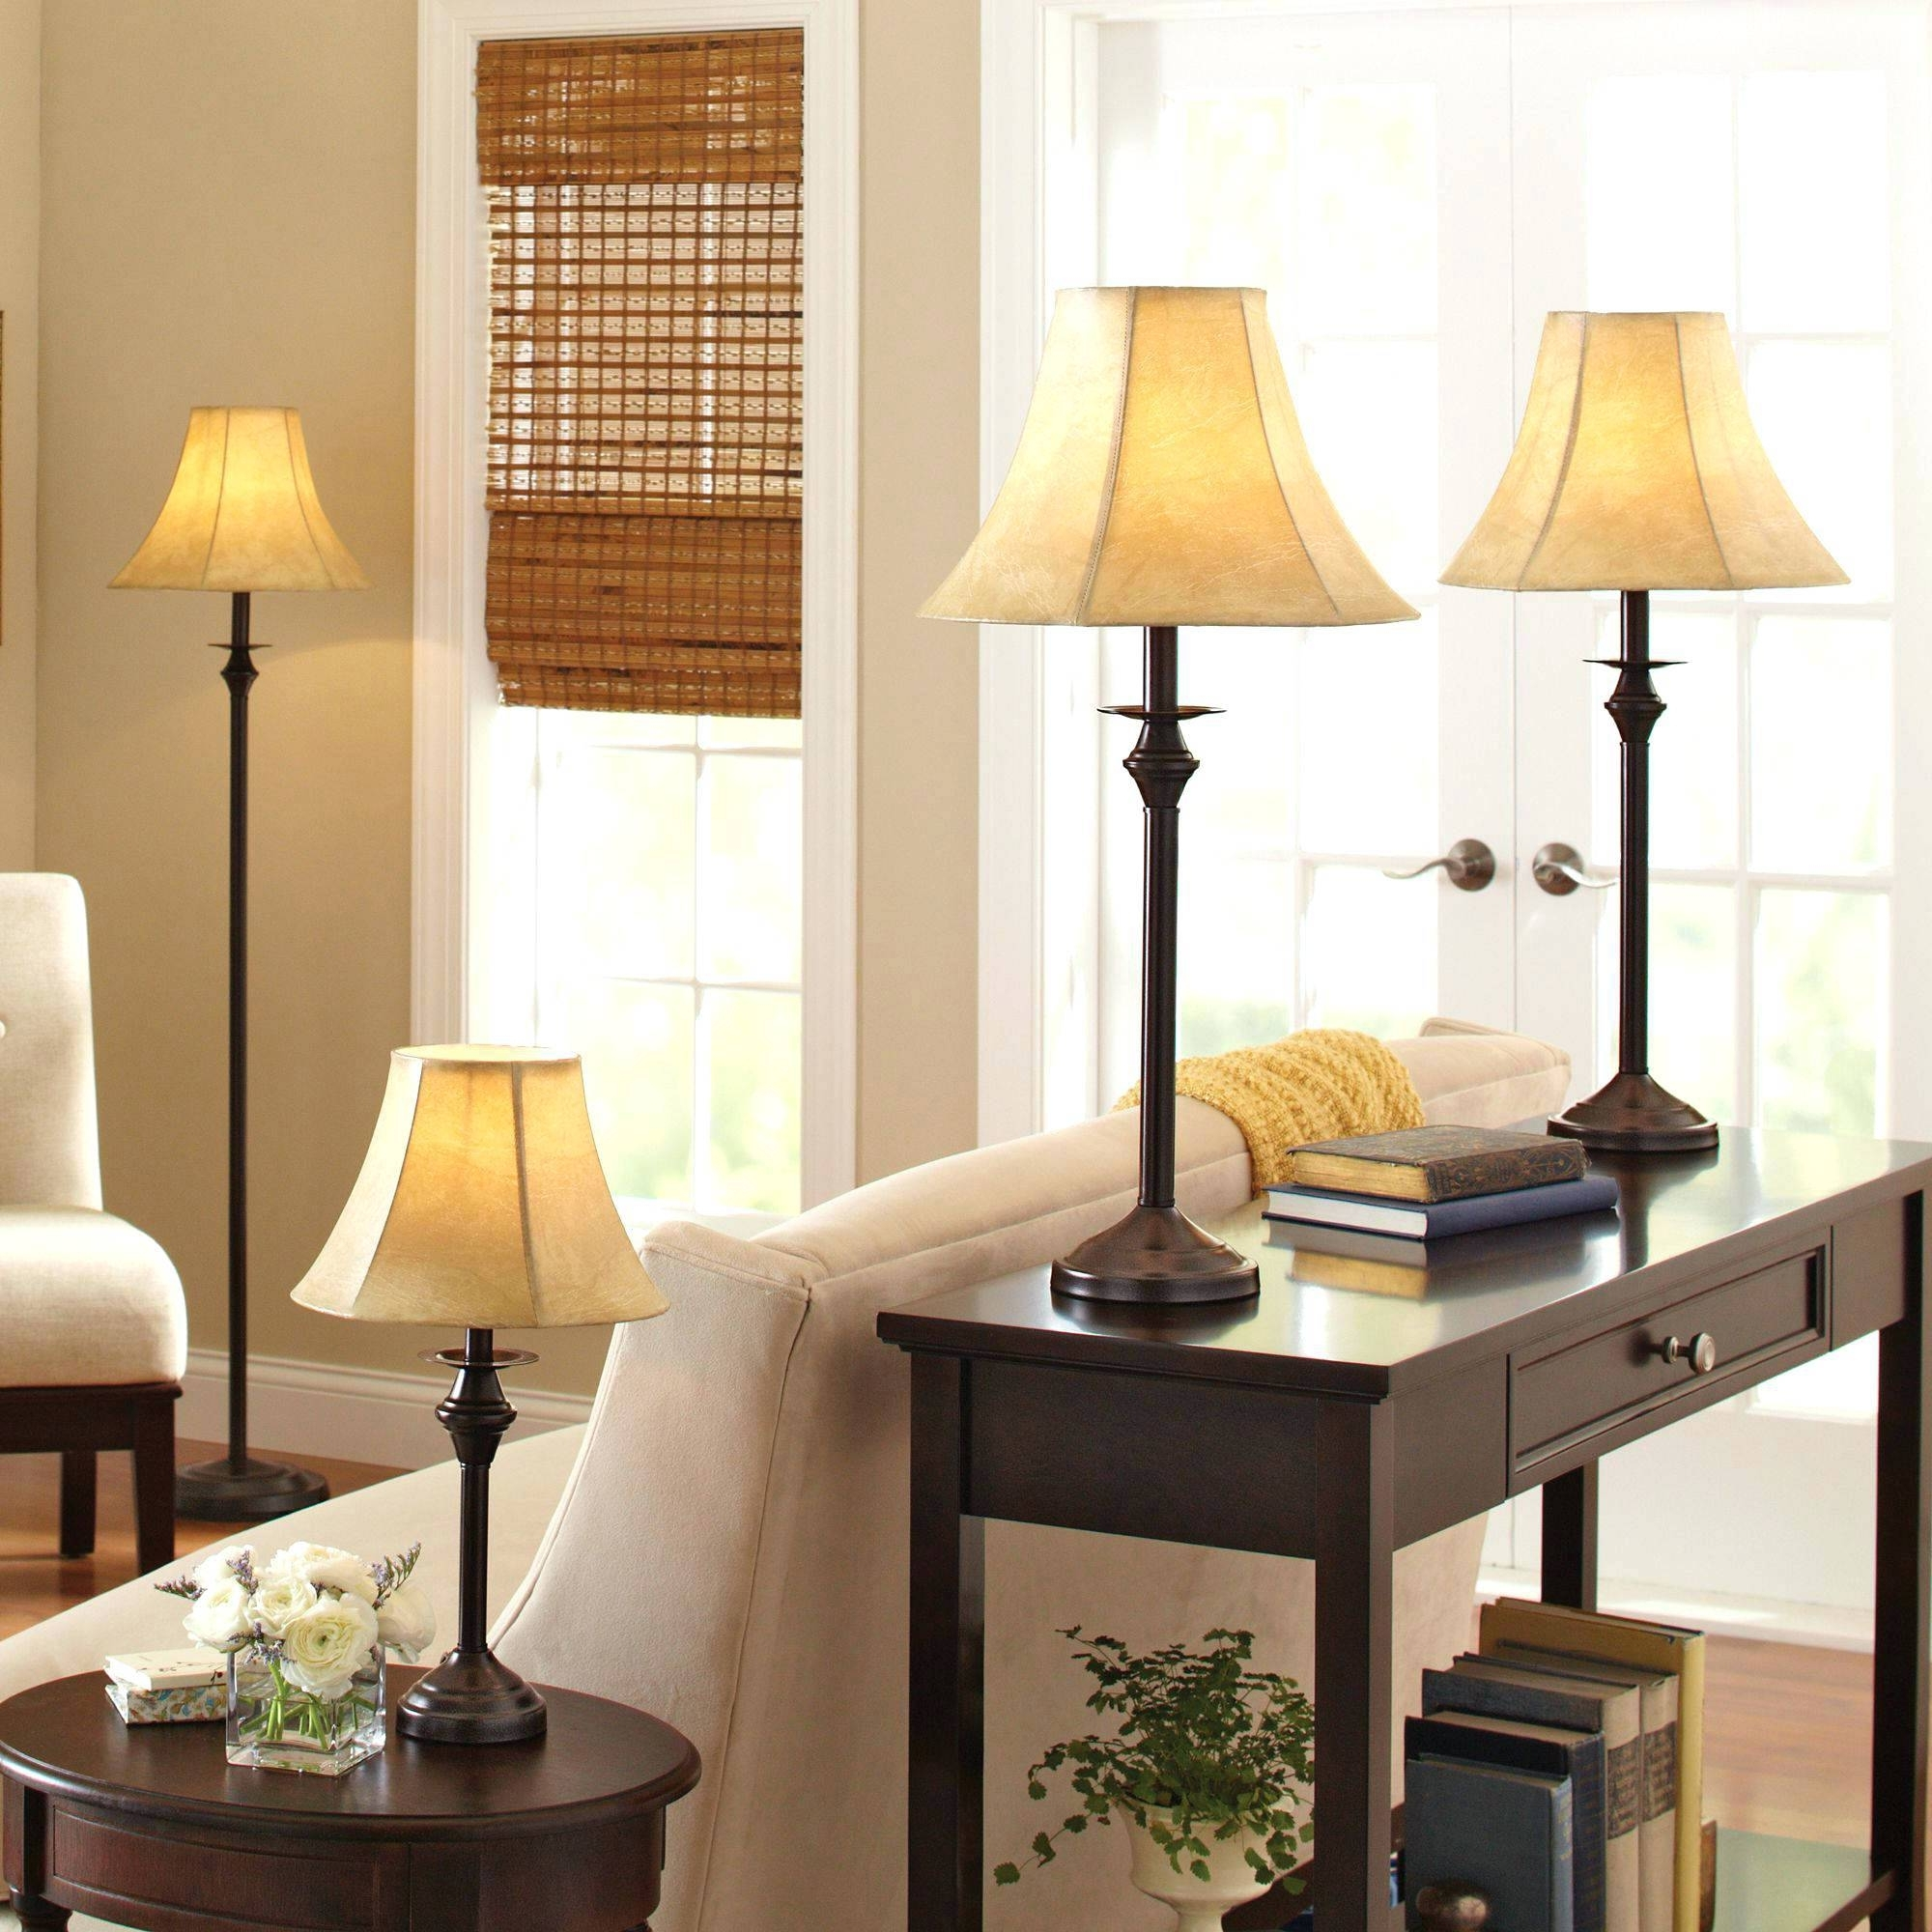 Recent Ideas Collection Table Lamps Living Room Houzz Lamp Big, Small For Houzz Living Room Table Lamps (View 13 of 15)